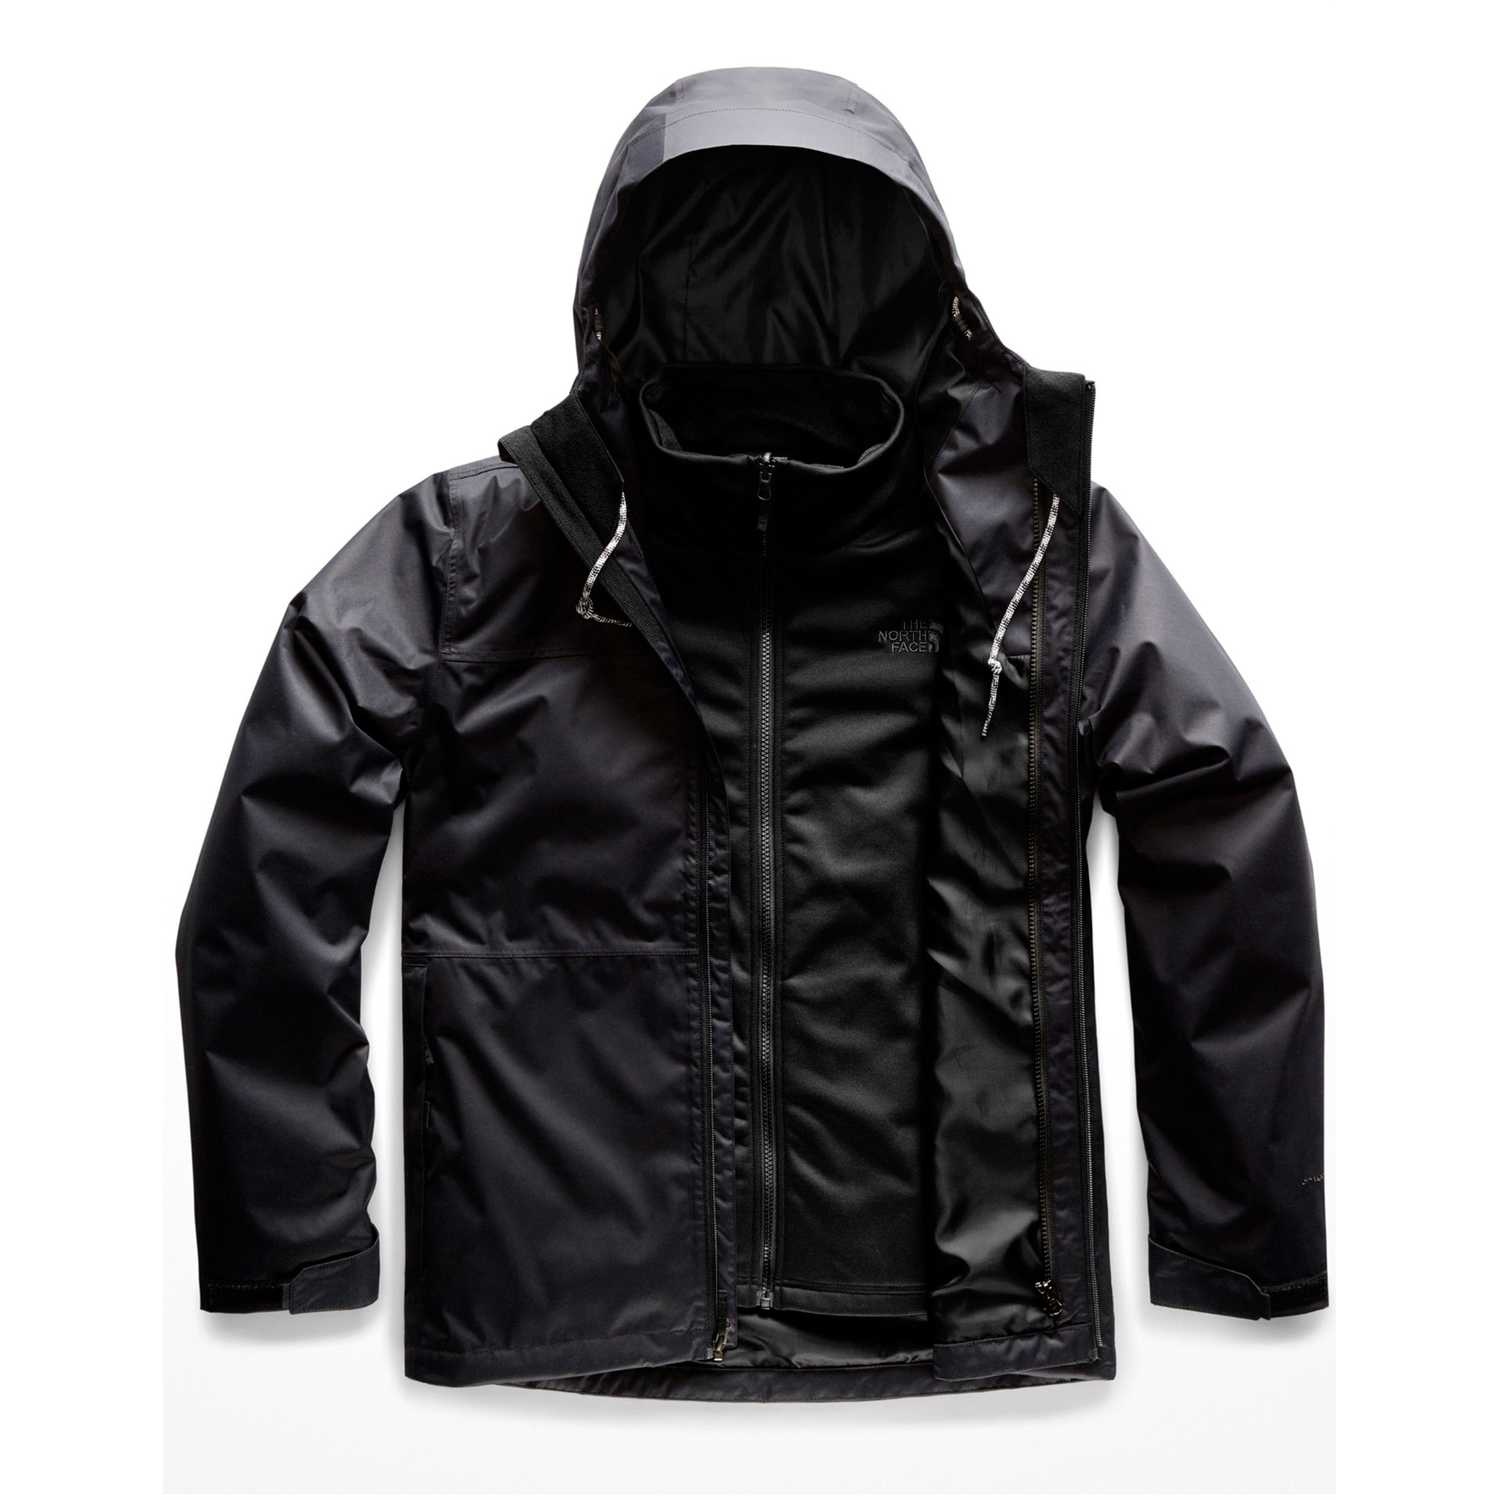 Casacas de Hombre The North Face Negro m arrowood triclimate jacket